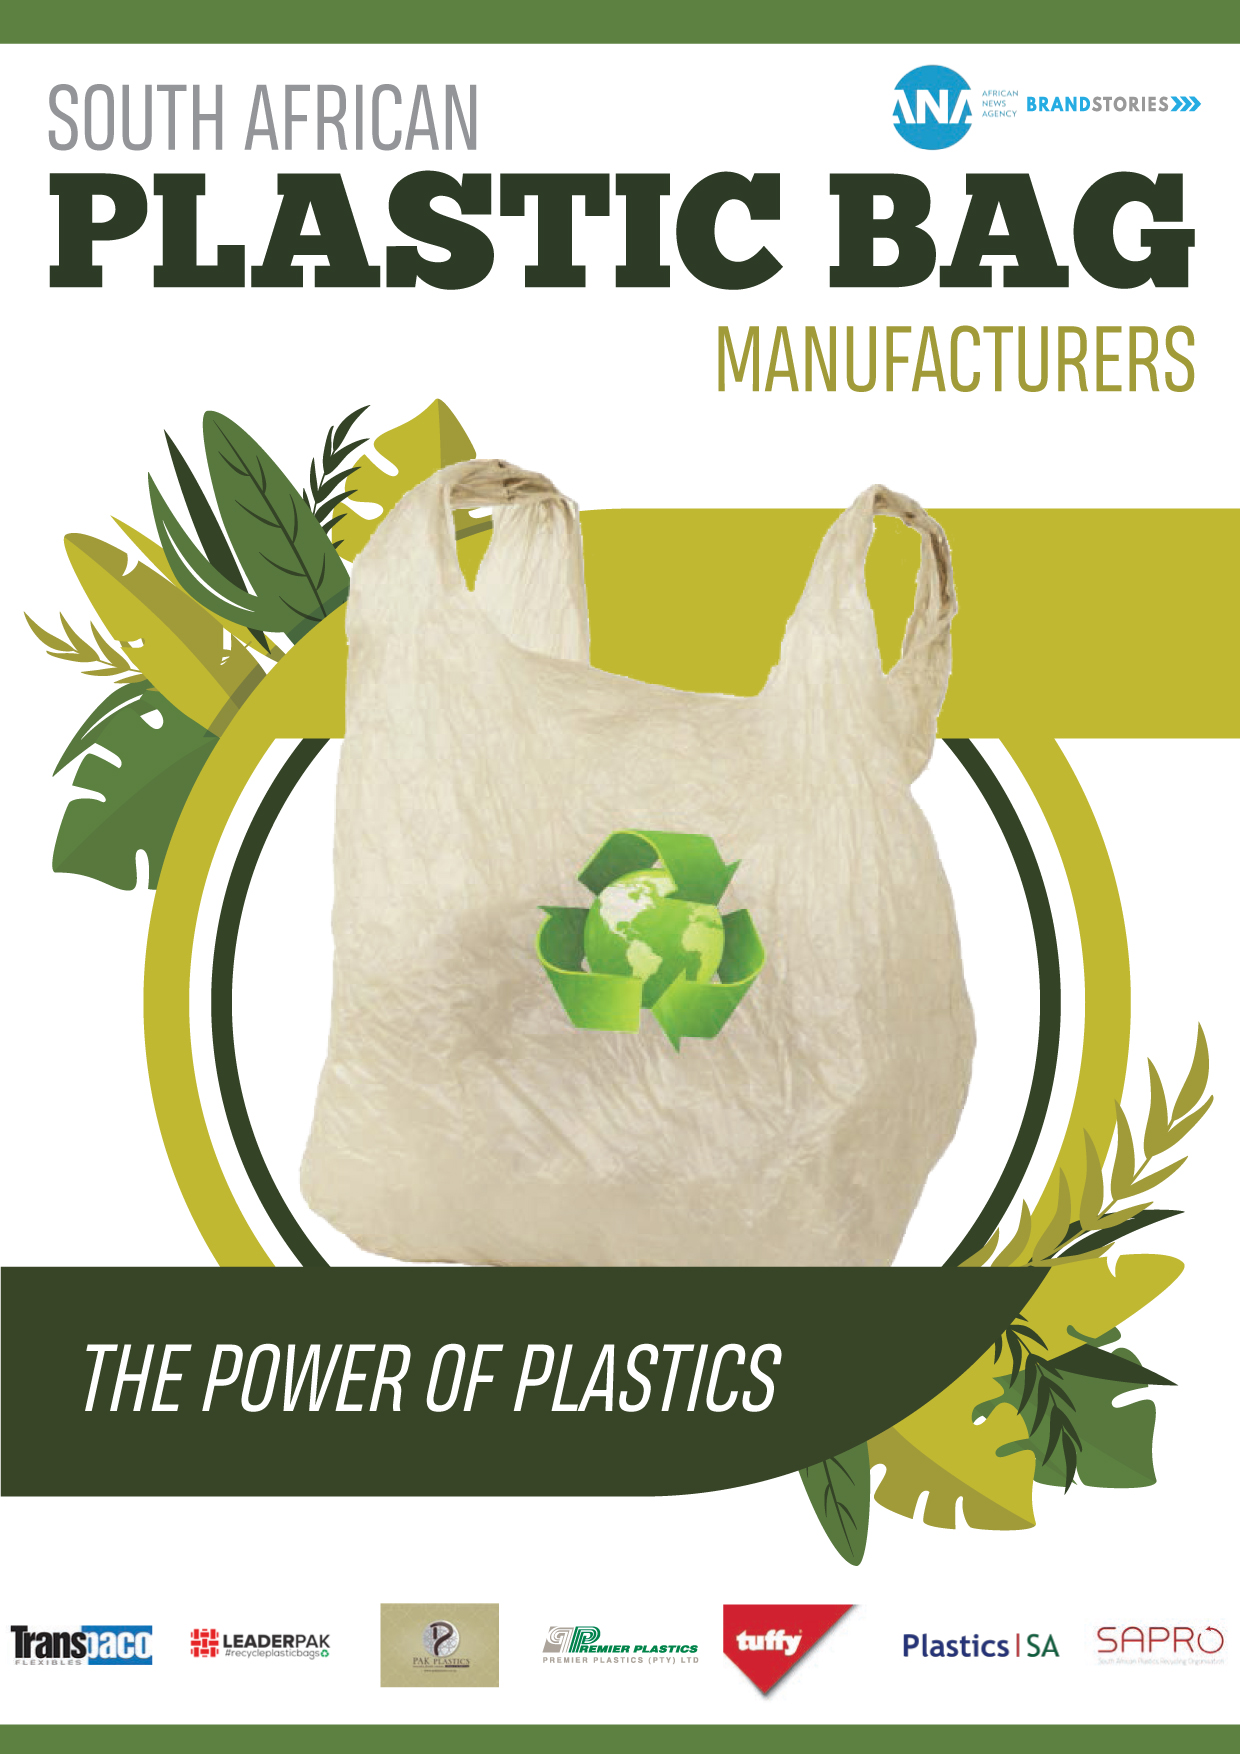 SAPBM (South African Plastic Bag Manufacturers)